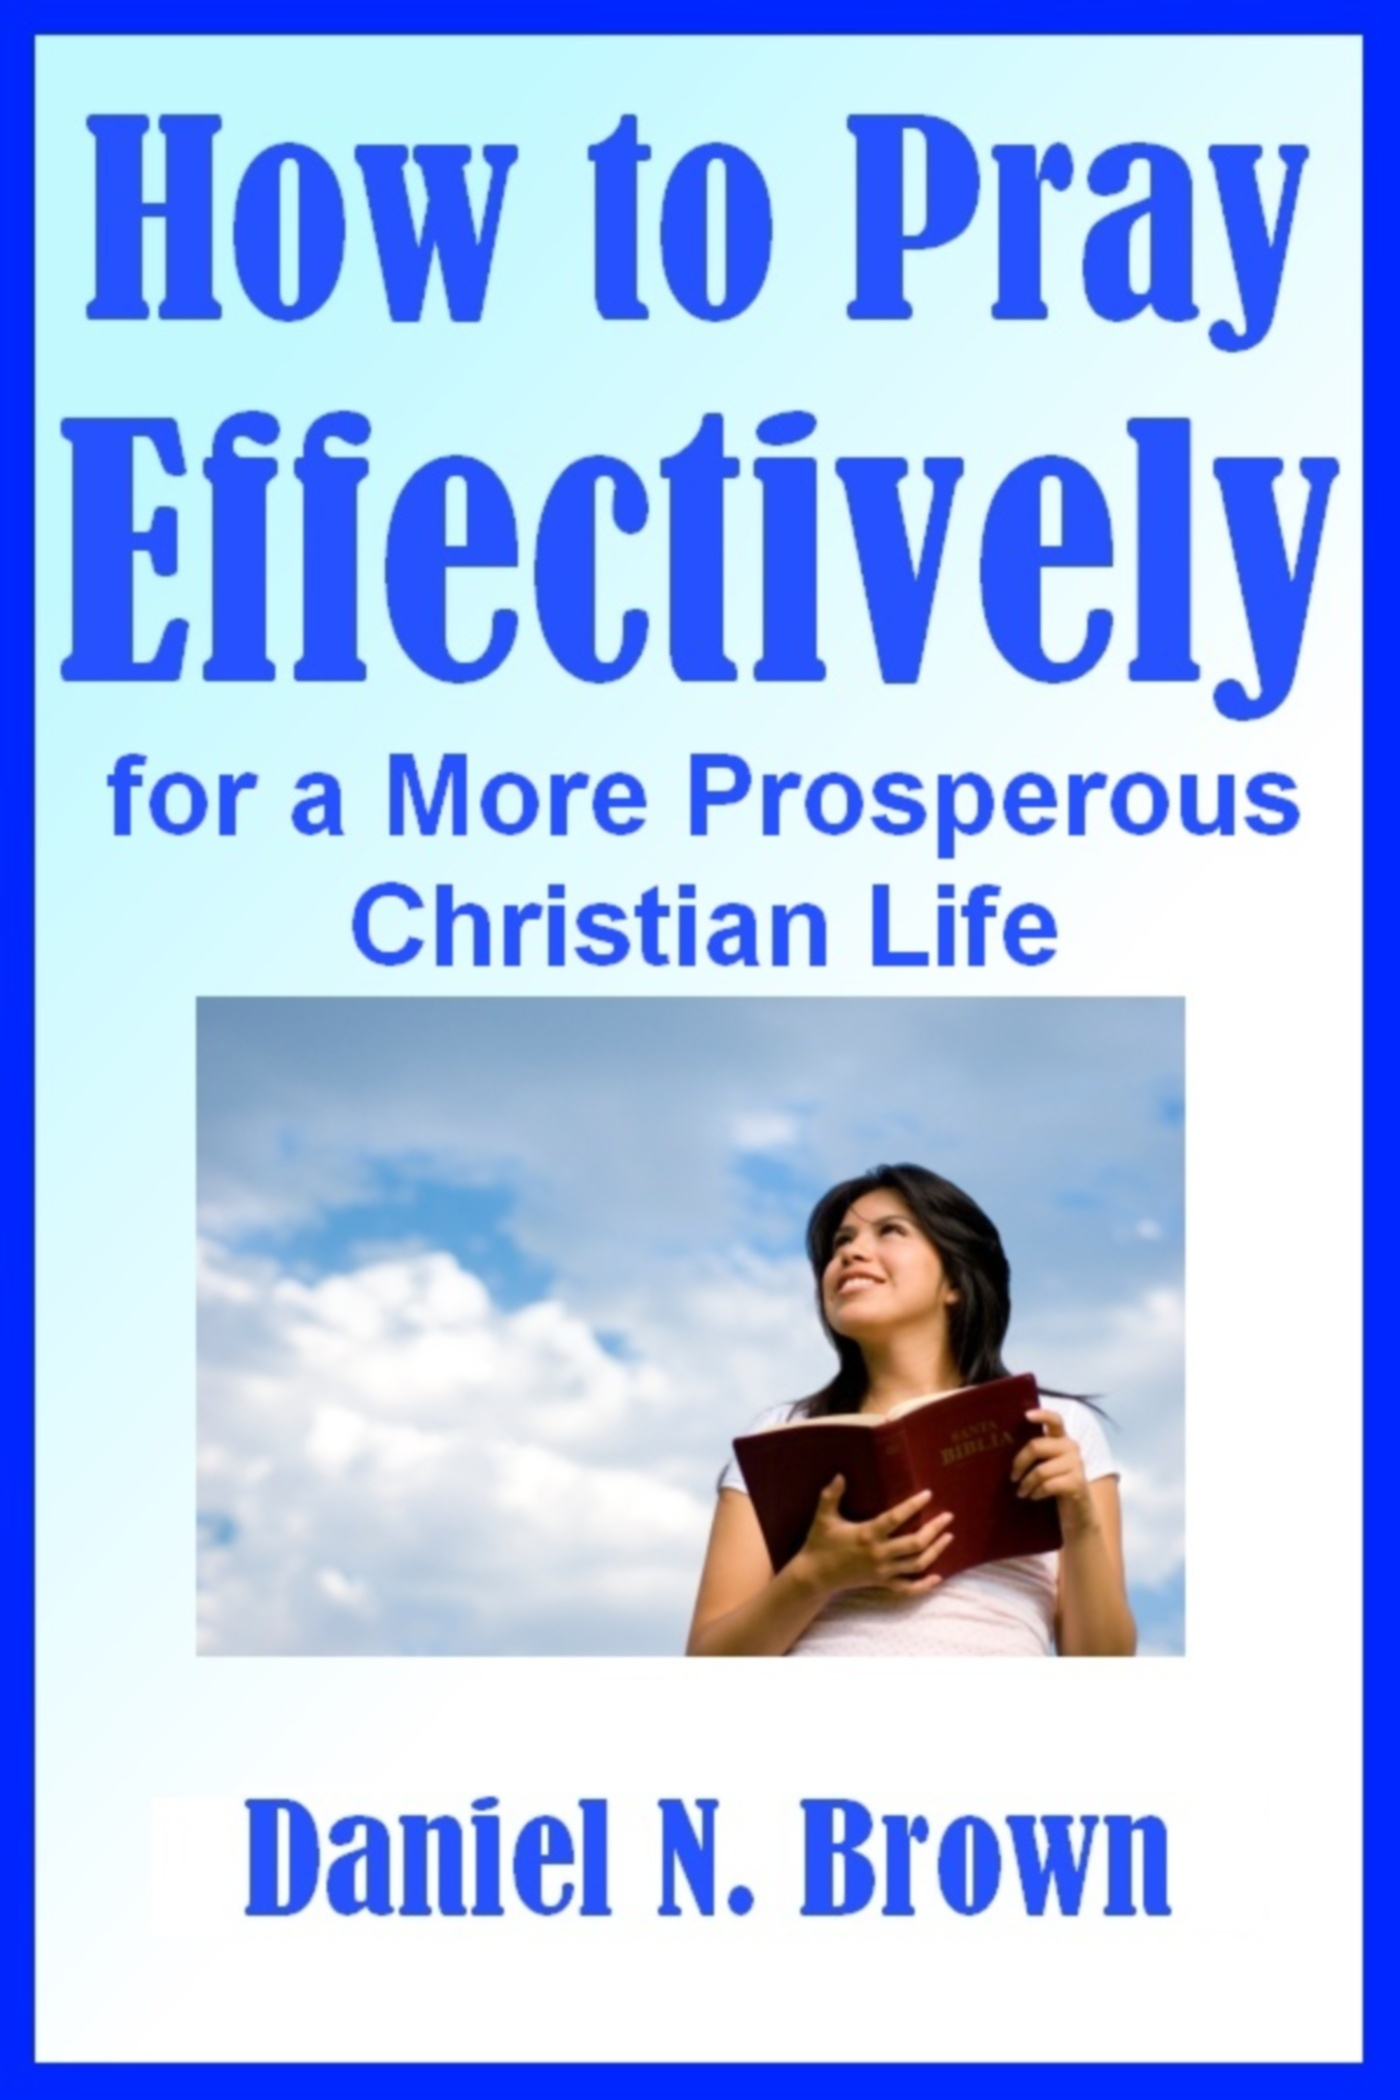 Prayer: How to Pray Effectively for a More Prosperous Christian Life